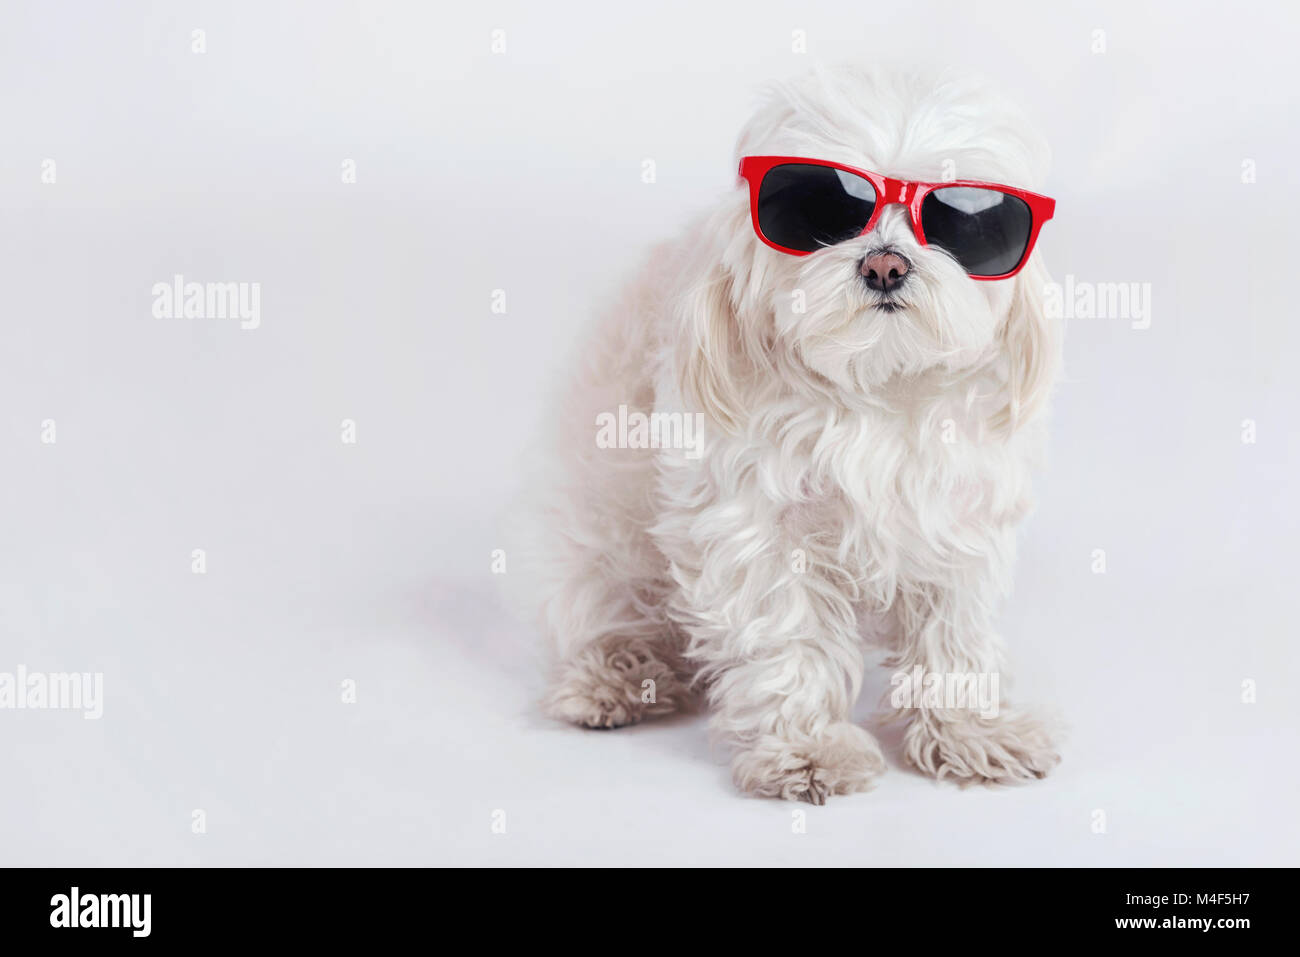 funny dog with sunglasses on white background - Stock Image